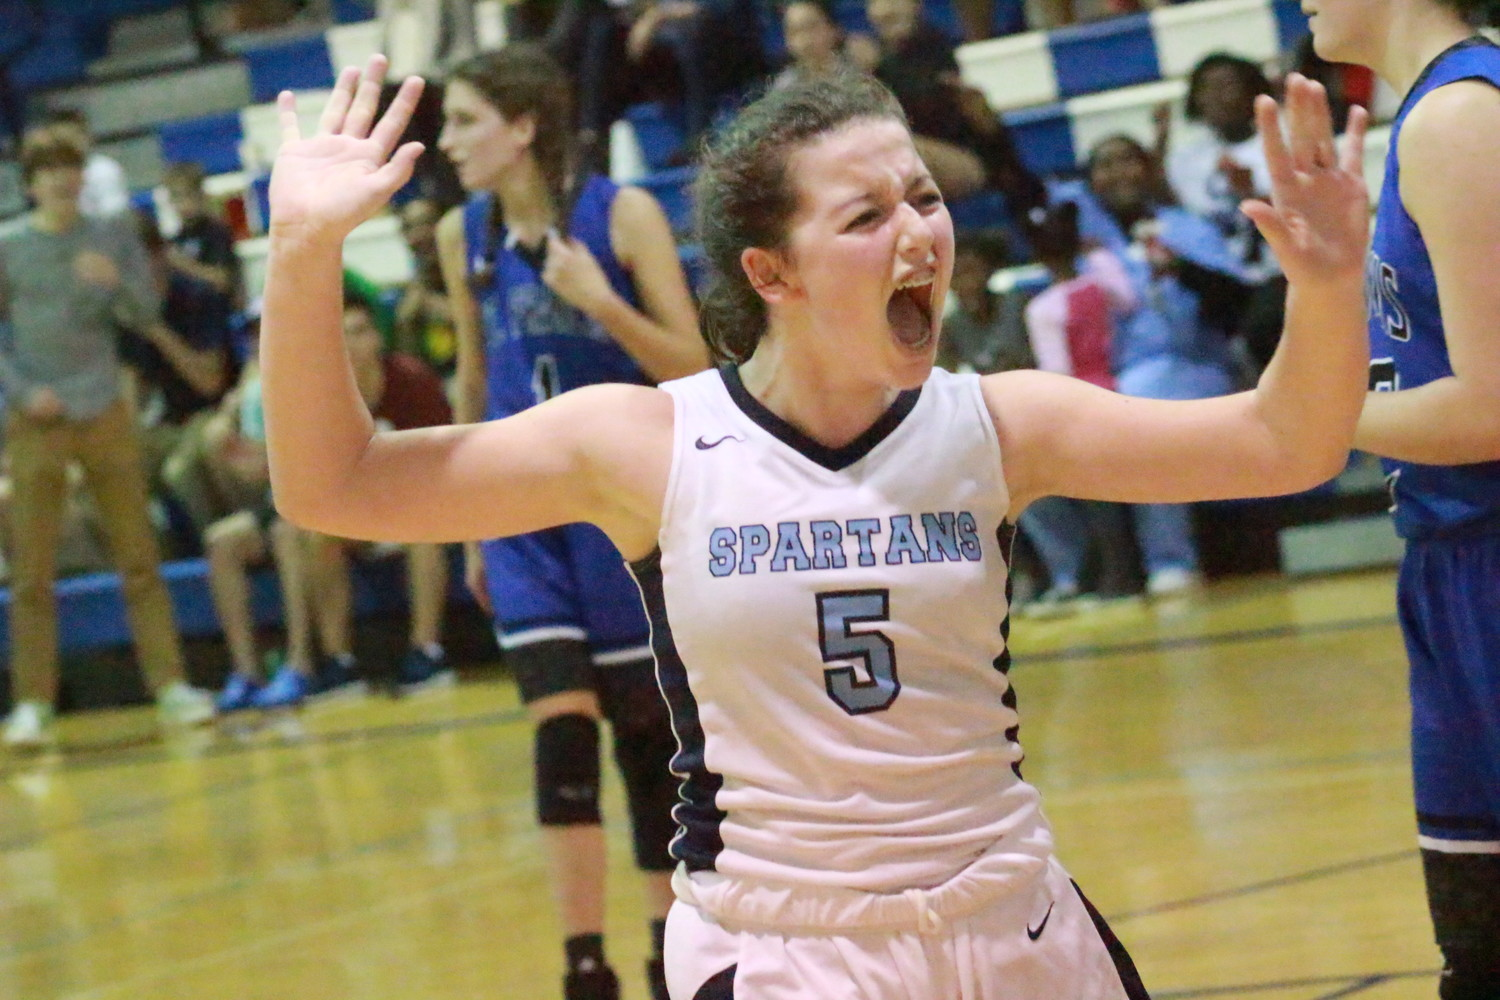 St. Johns Country Day School freshman guard Maggie Kent drilled the key three-pointer in a tight district semifinal win that put the Lady Spartans in their district title game.